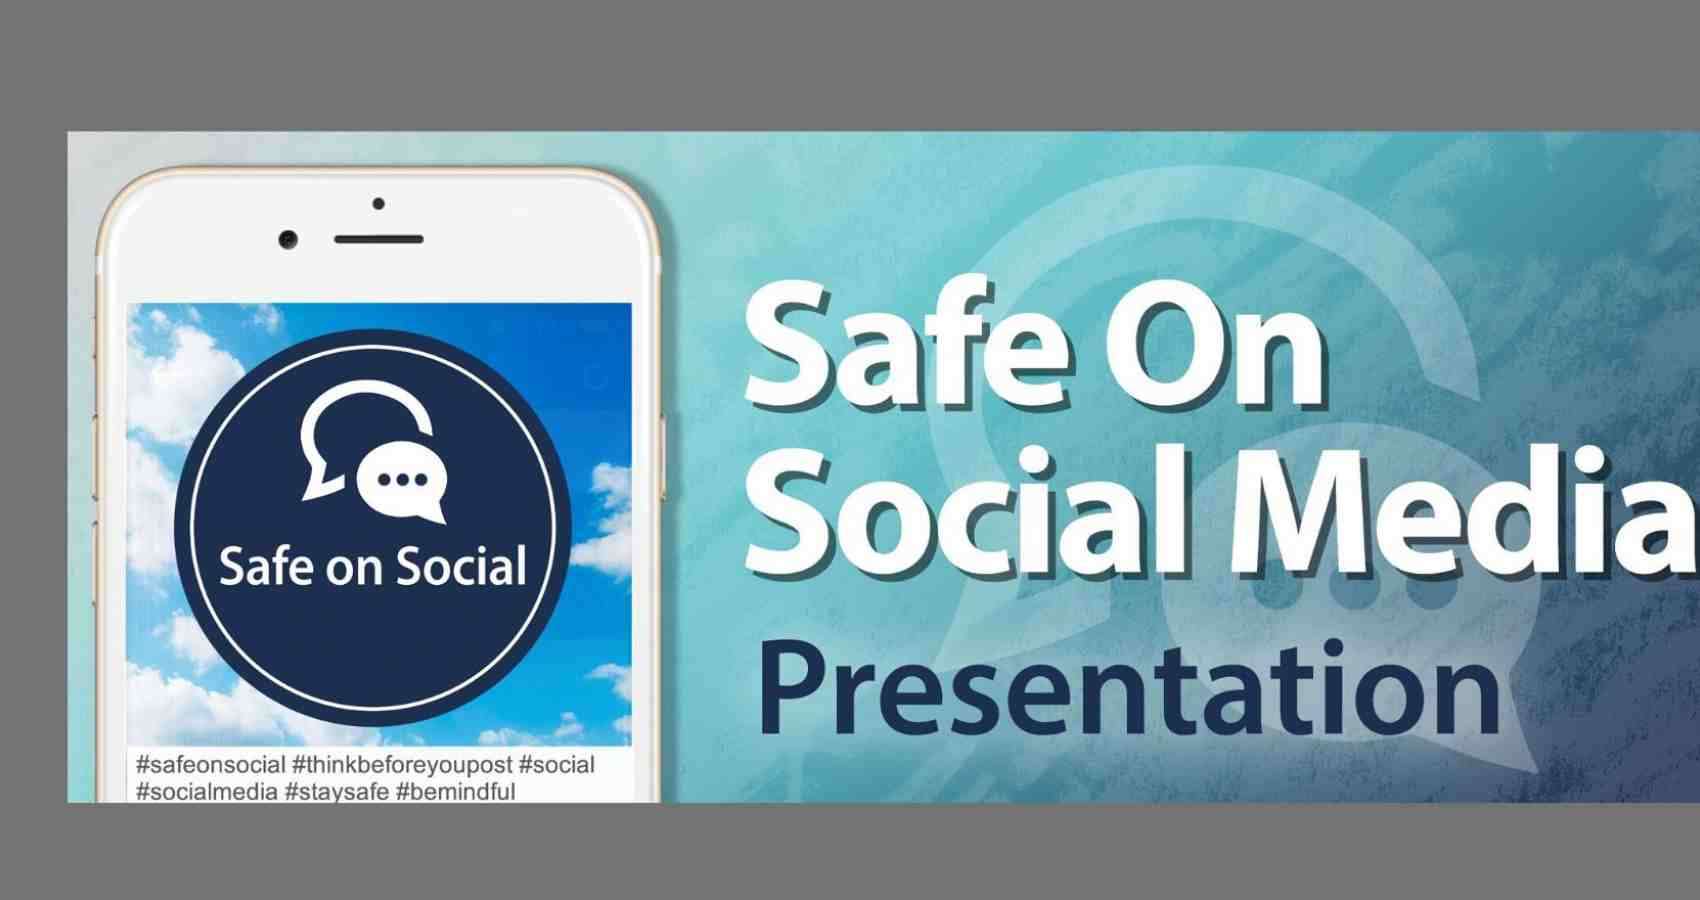 Safe on Social Media Presentation